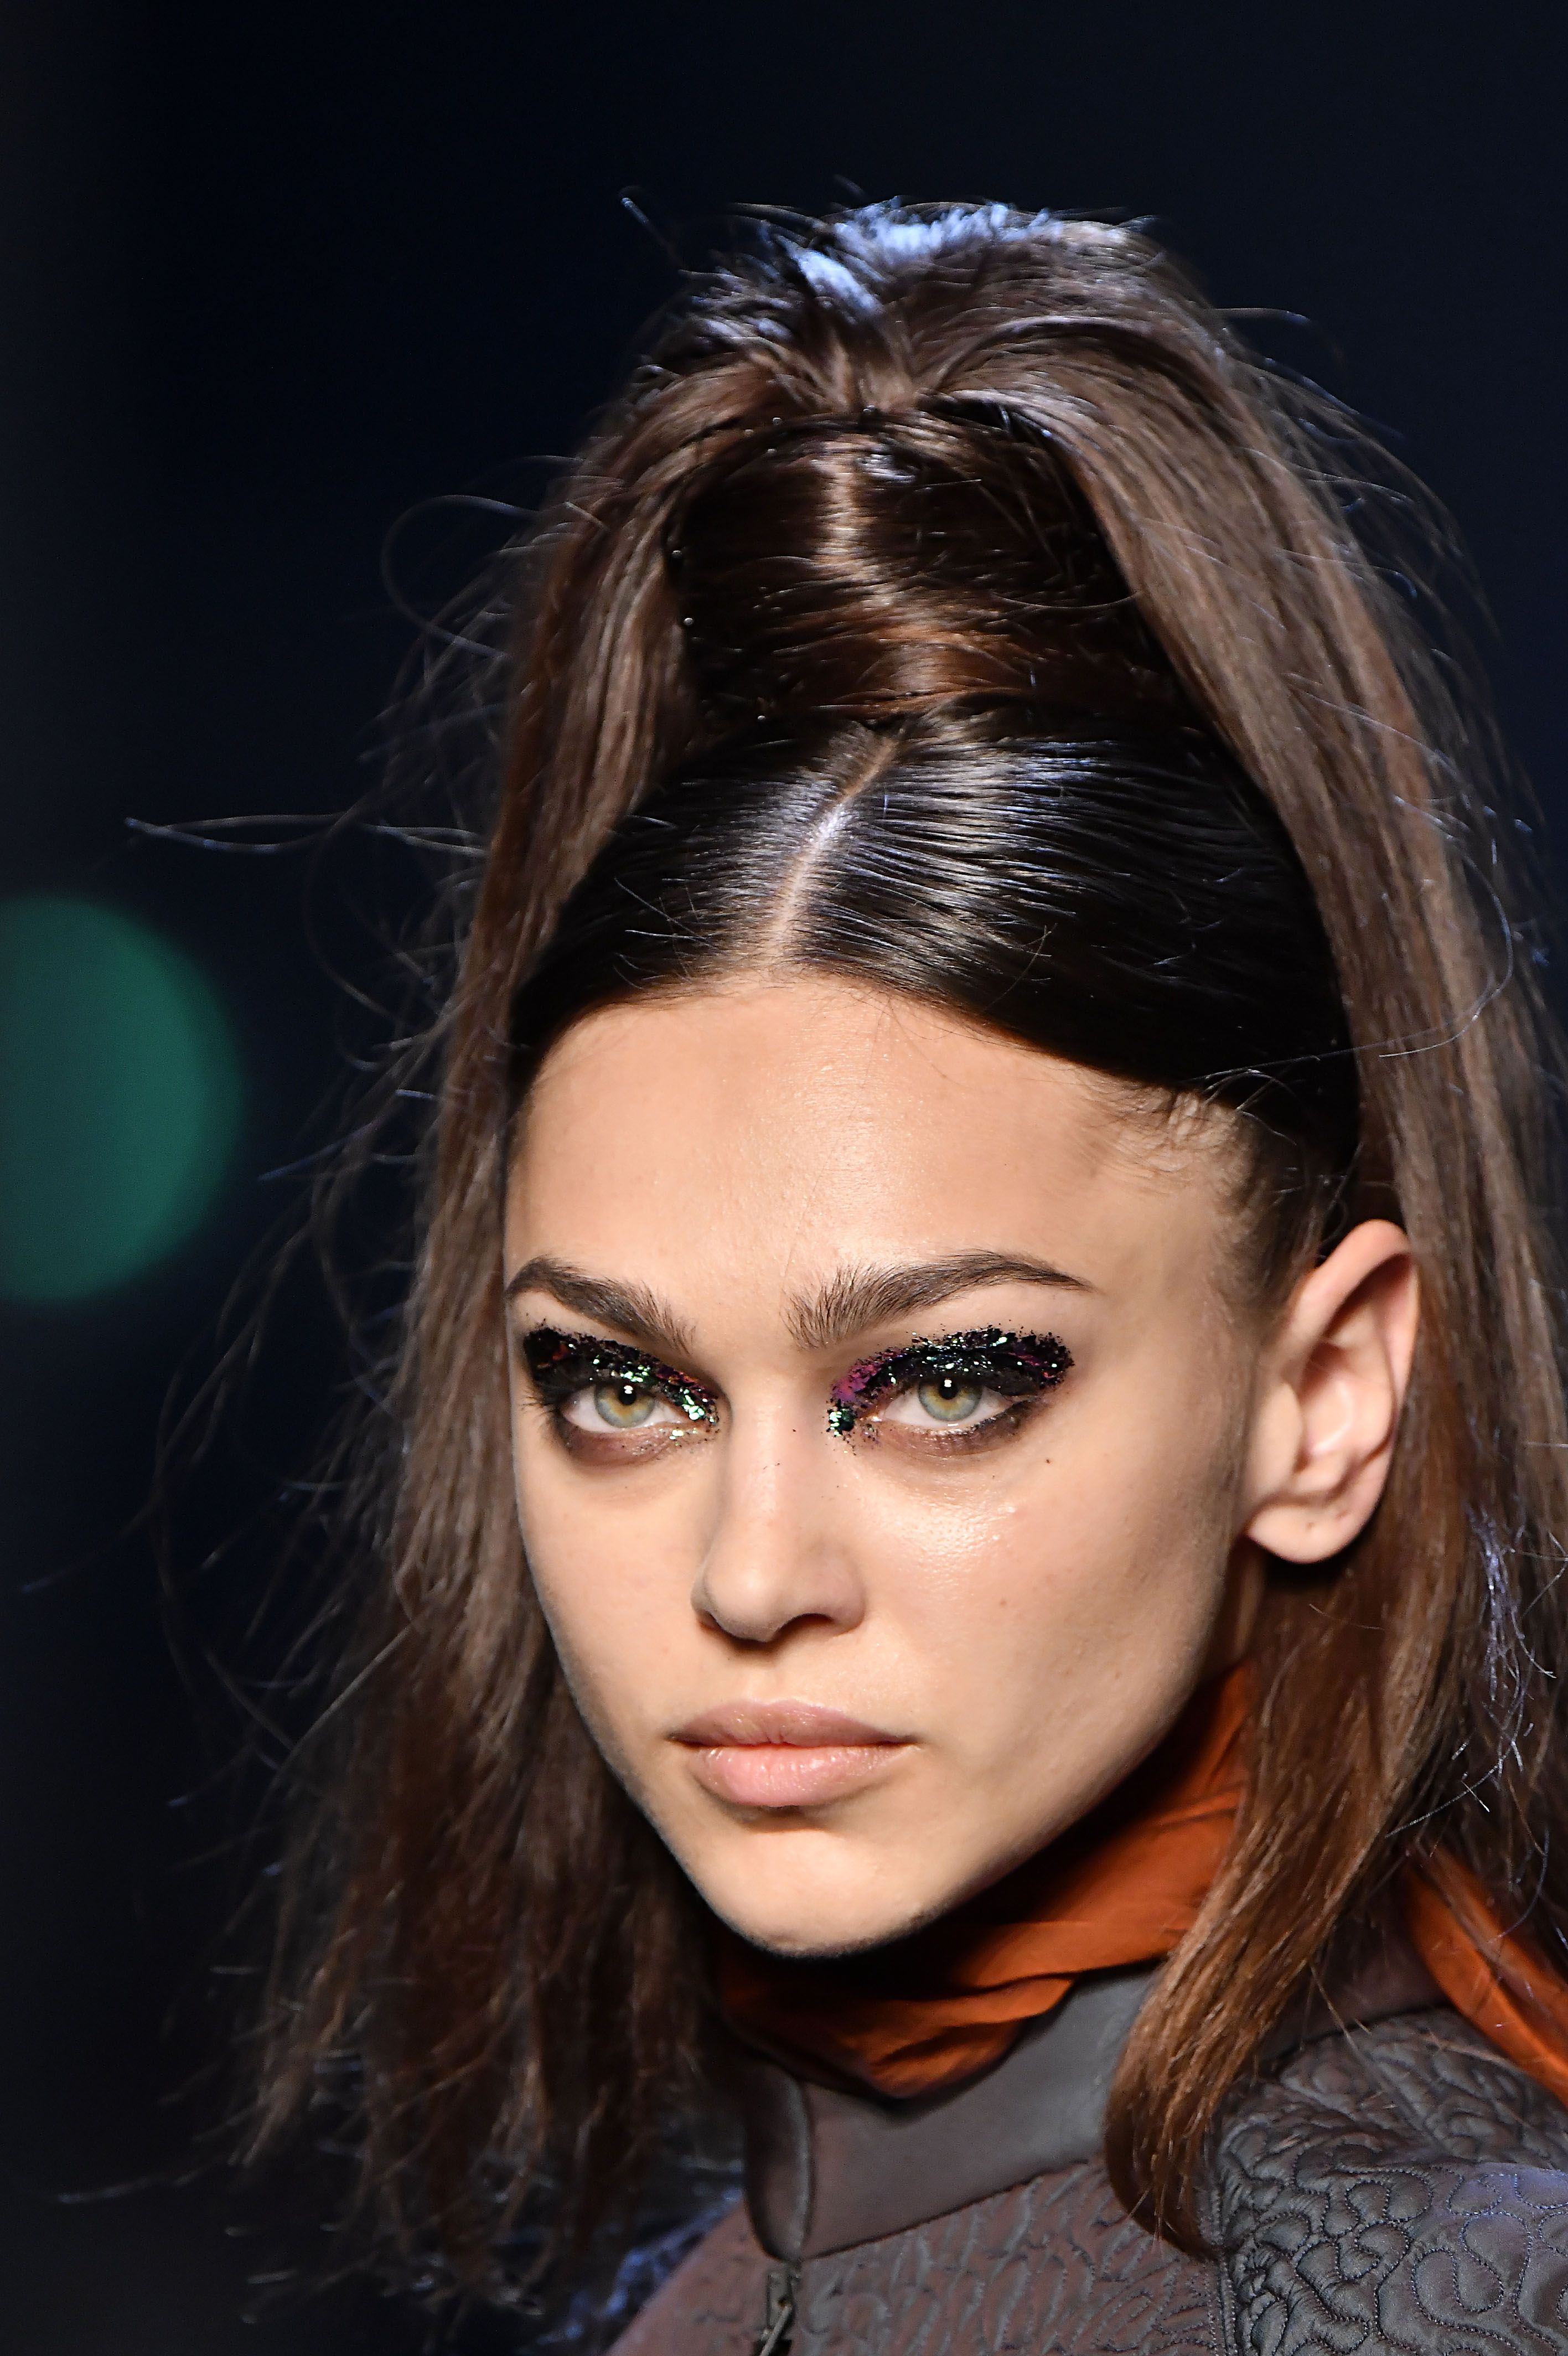 Makeup Fall 2020.Best Beauty Looks At Haute Couture Fall 2019 2020 Runways